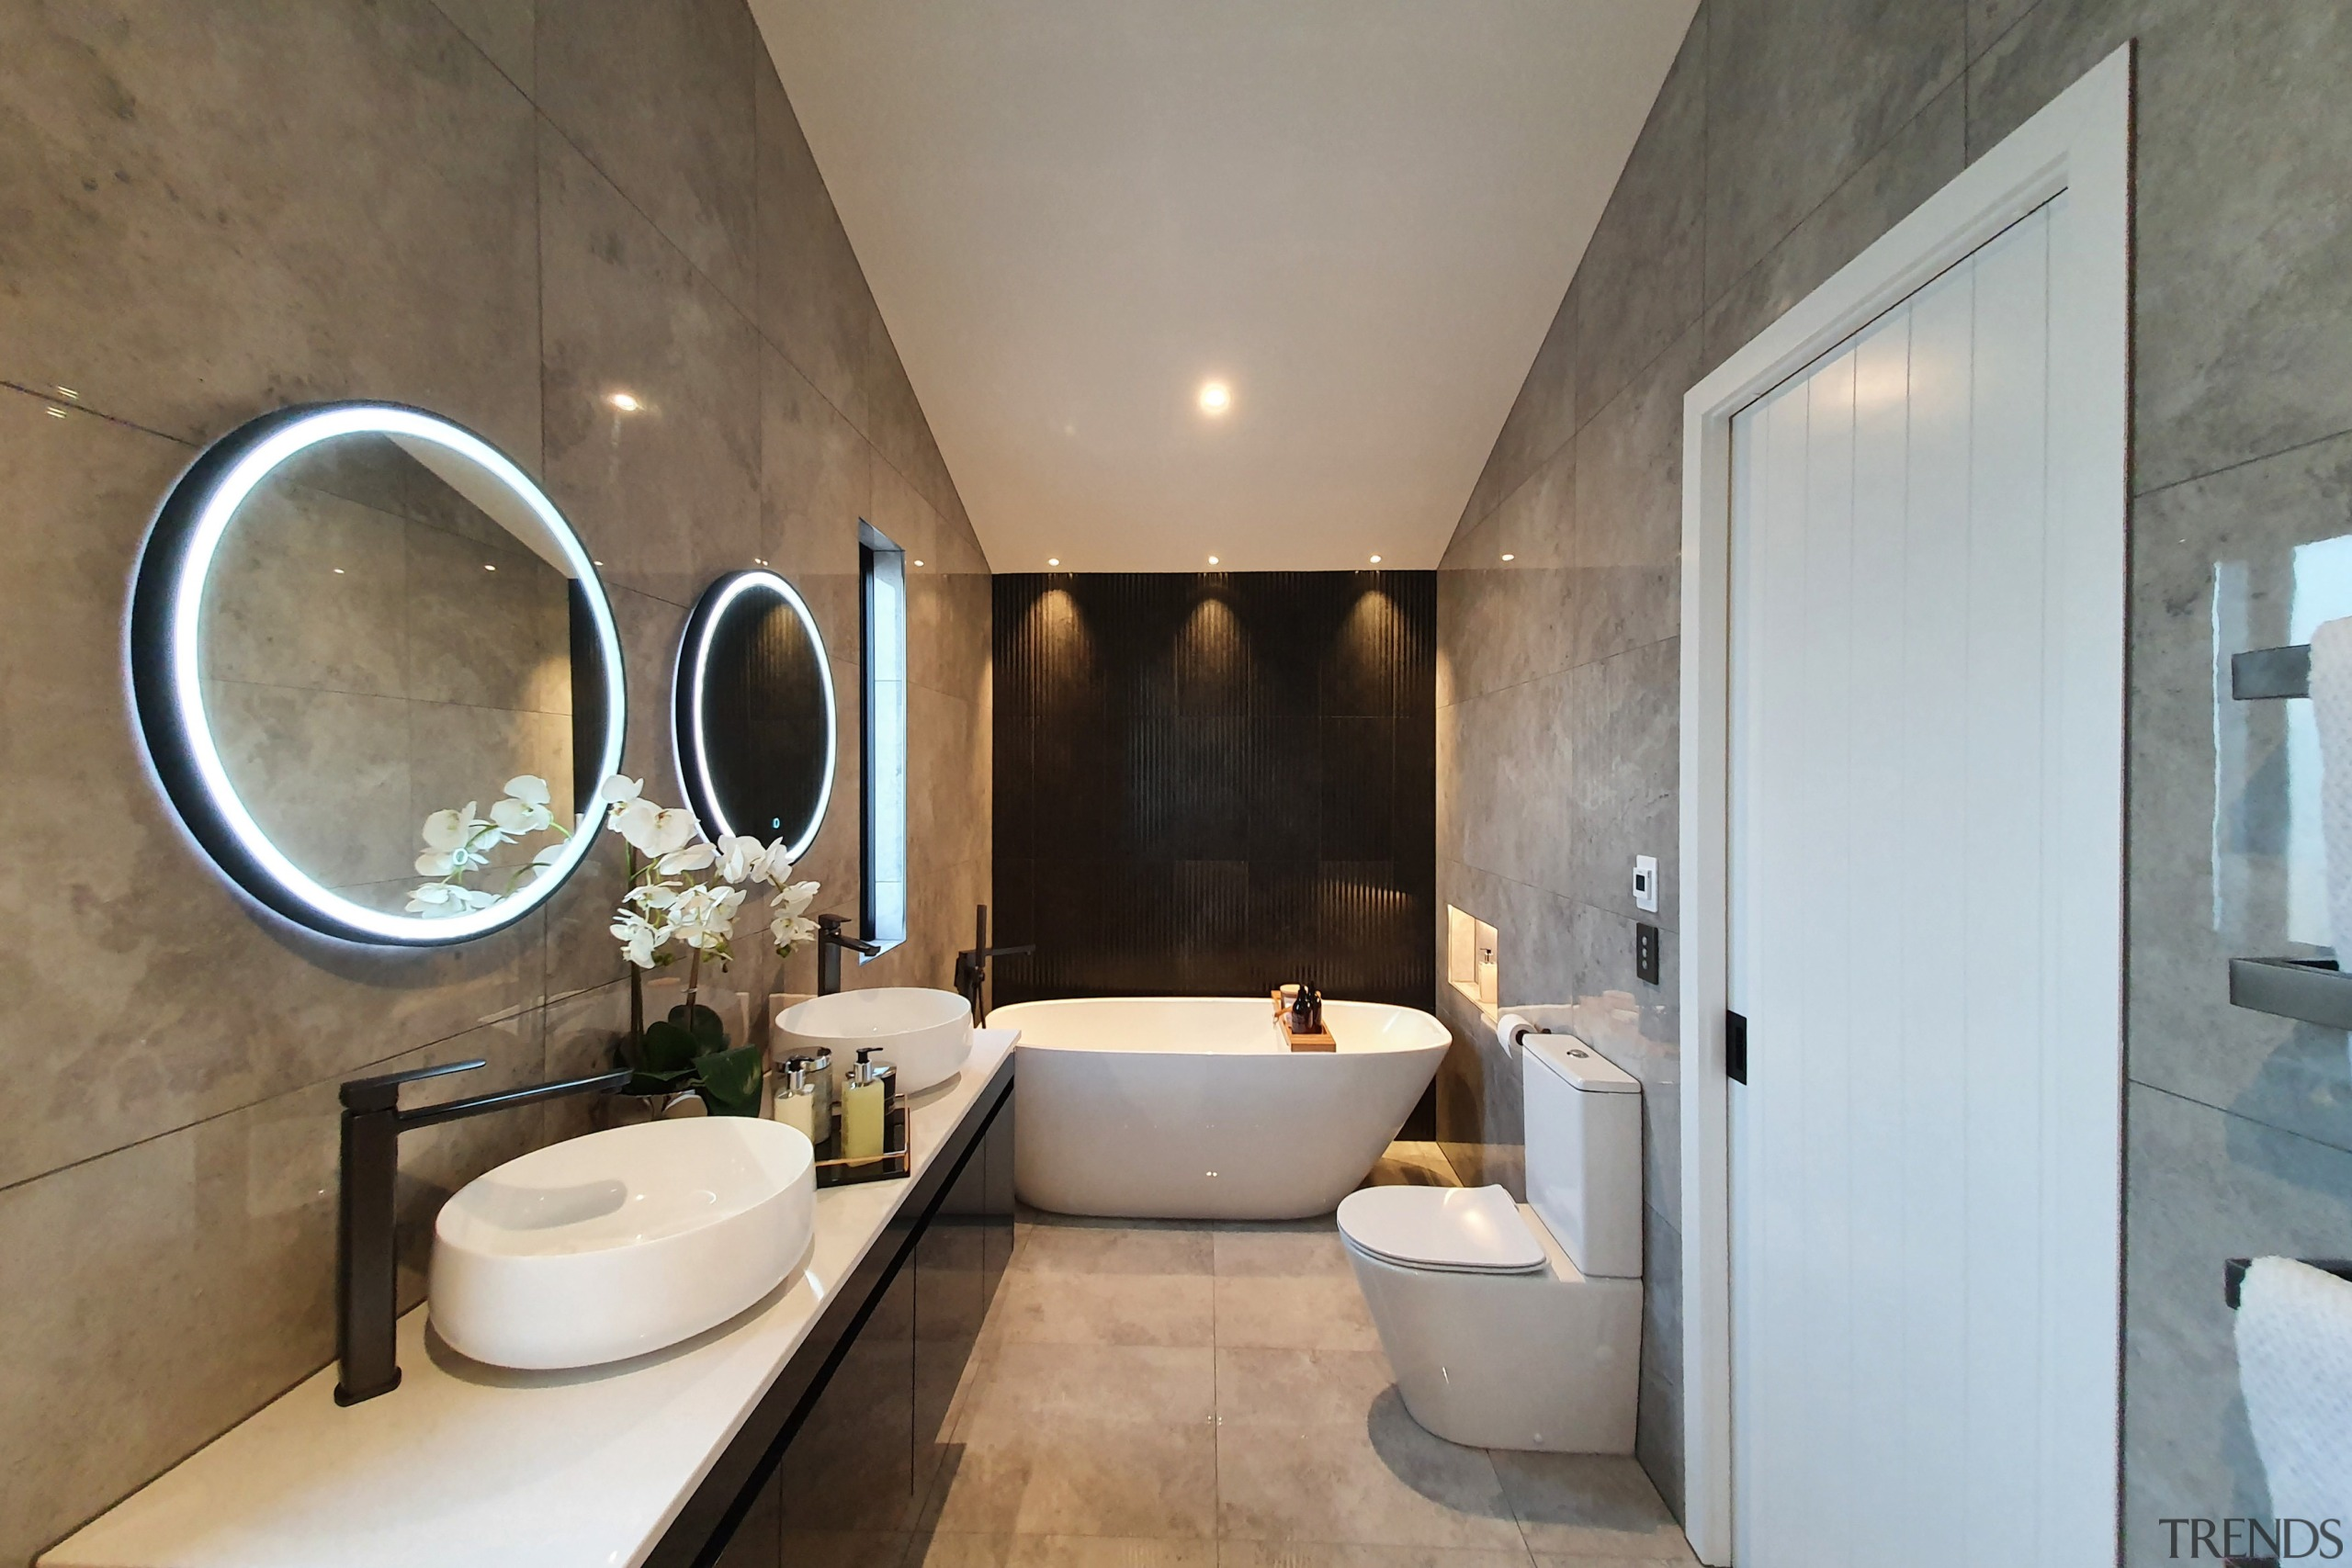 Illuminated circular mirrors add to the exotic feel